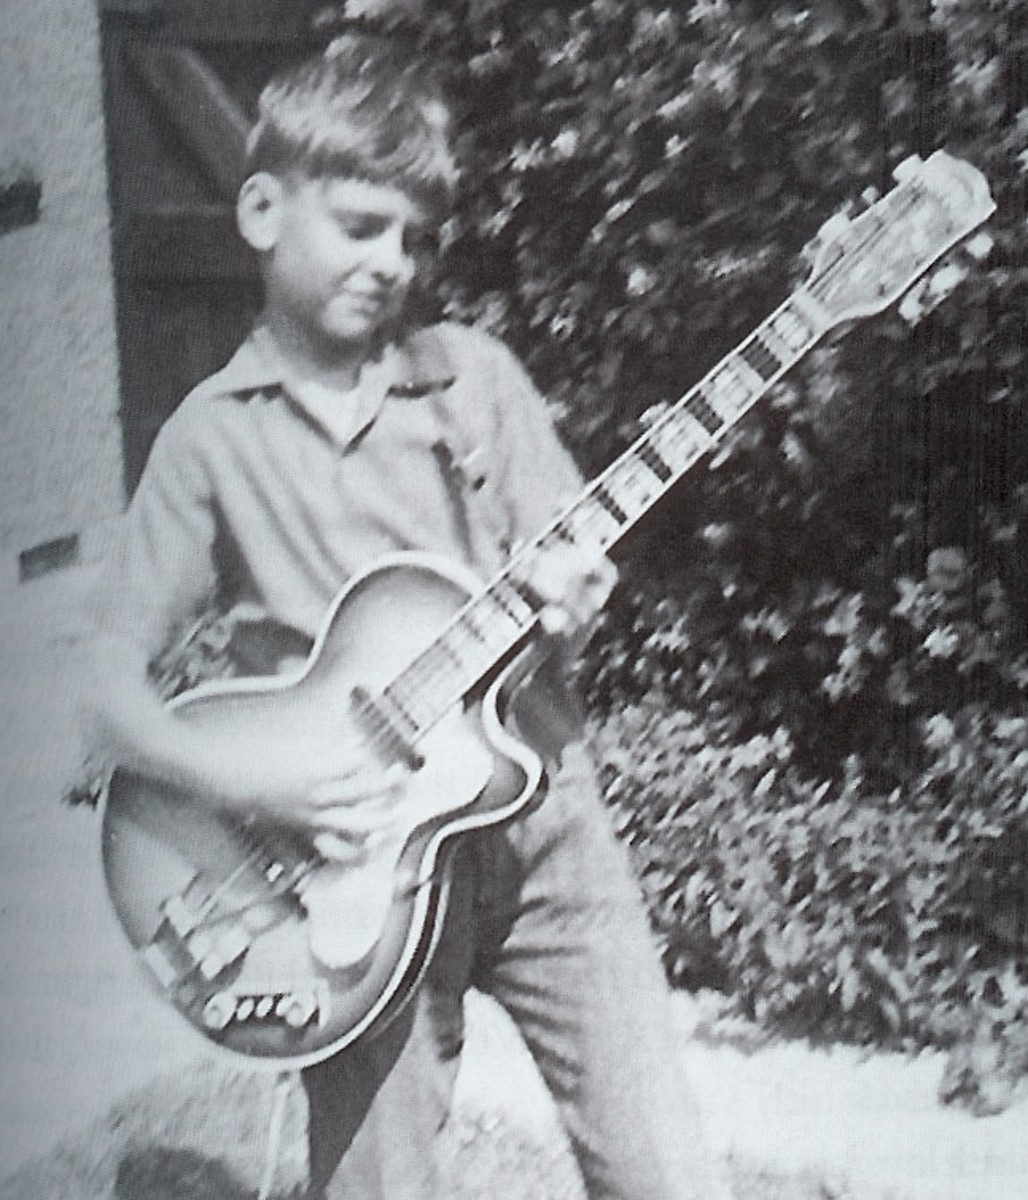 A very young Peter Frampton.